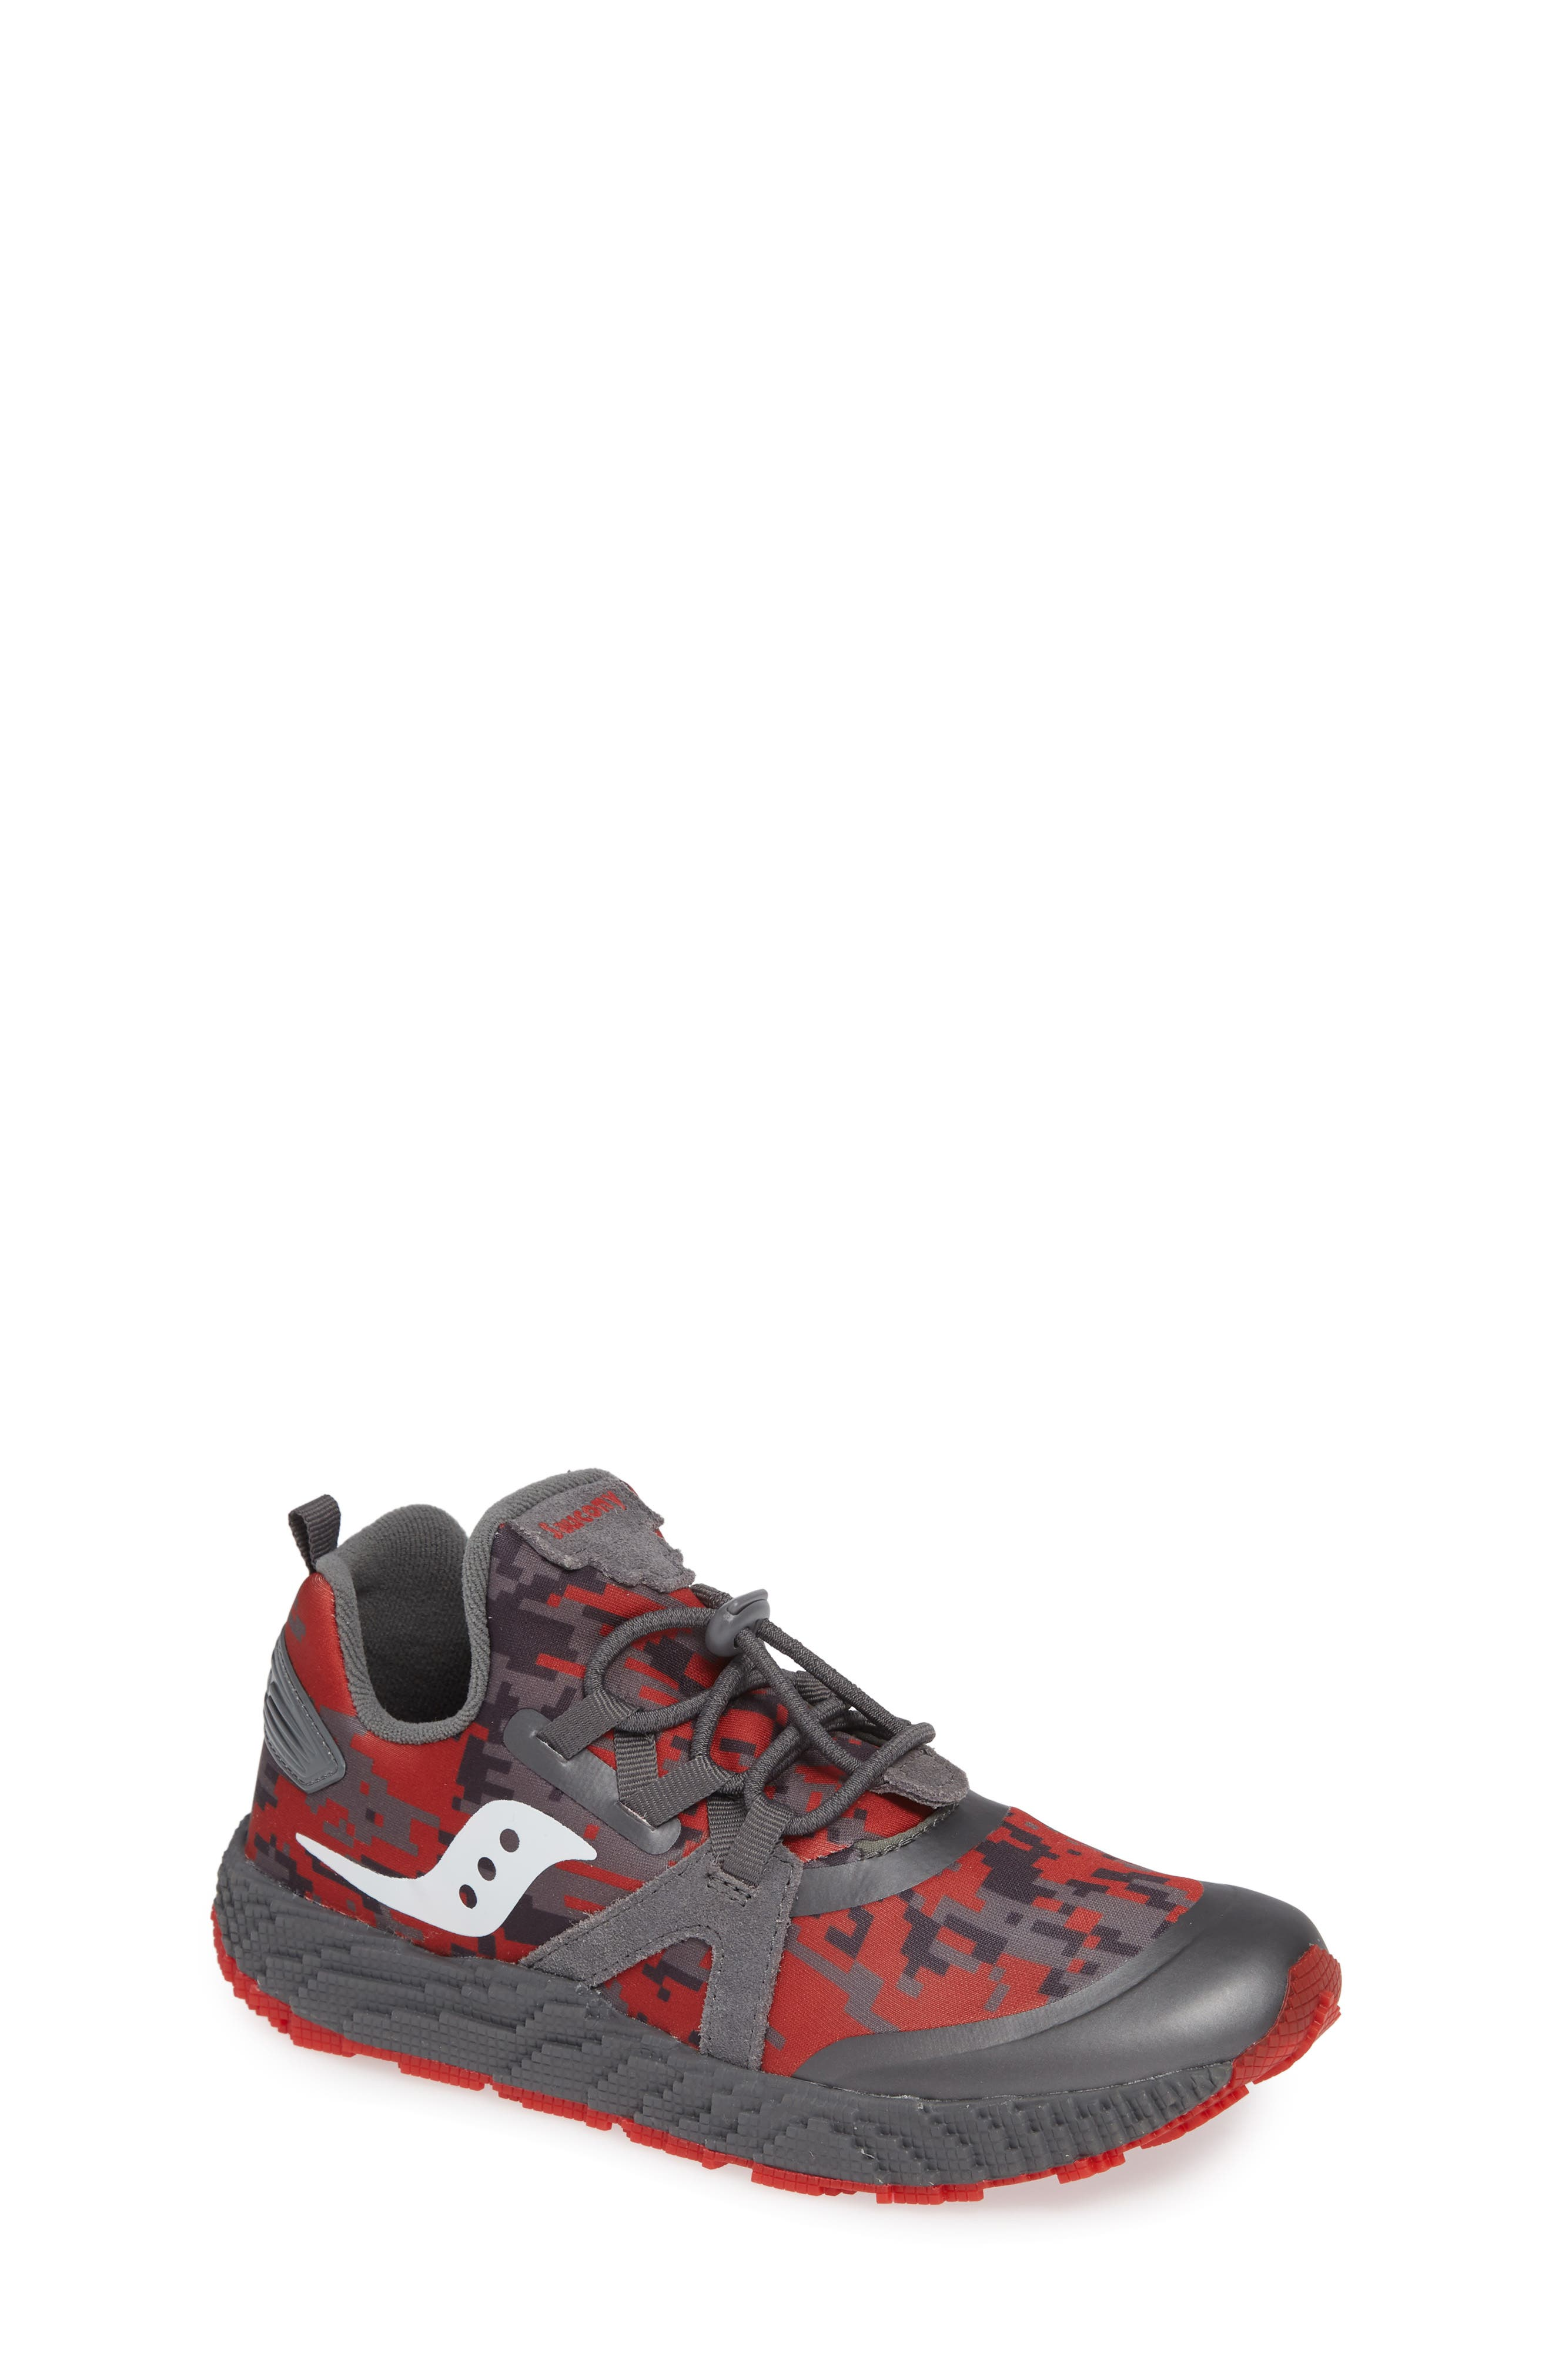 Voxel 9000 Sneaker,                             Main thumbnail 1, color,                             GREY LEATHER/ MESH 2